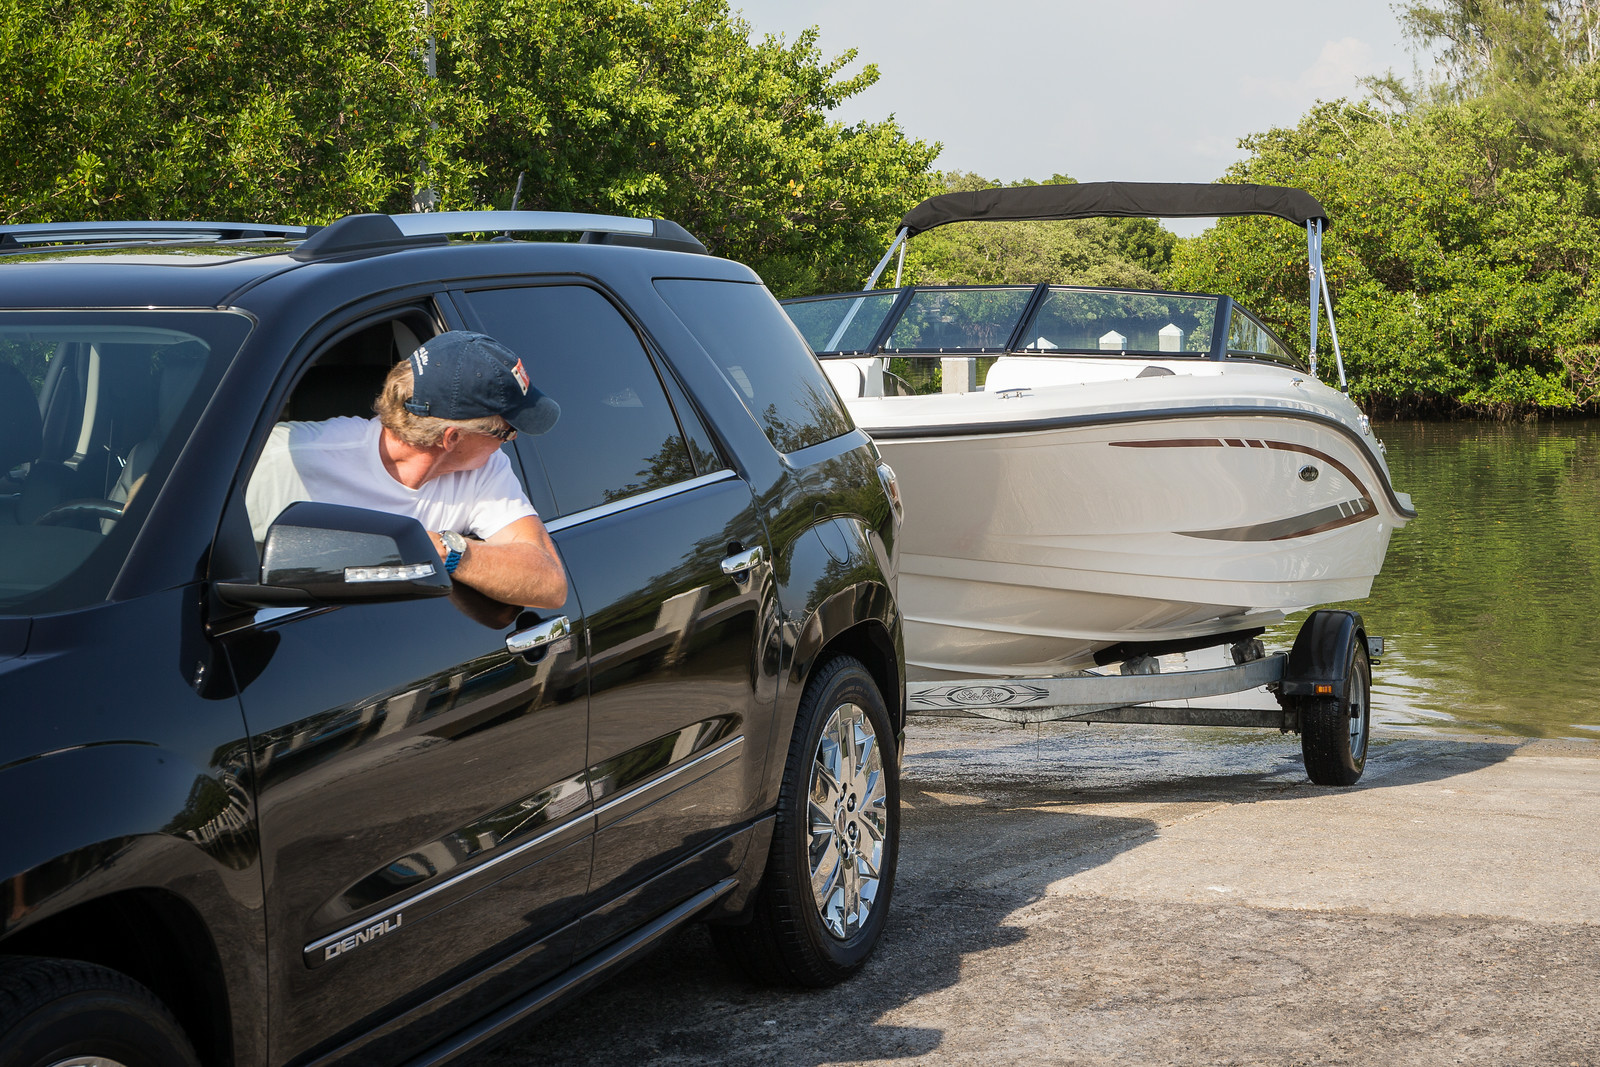 Getting into your first boat